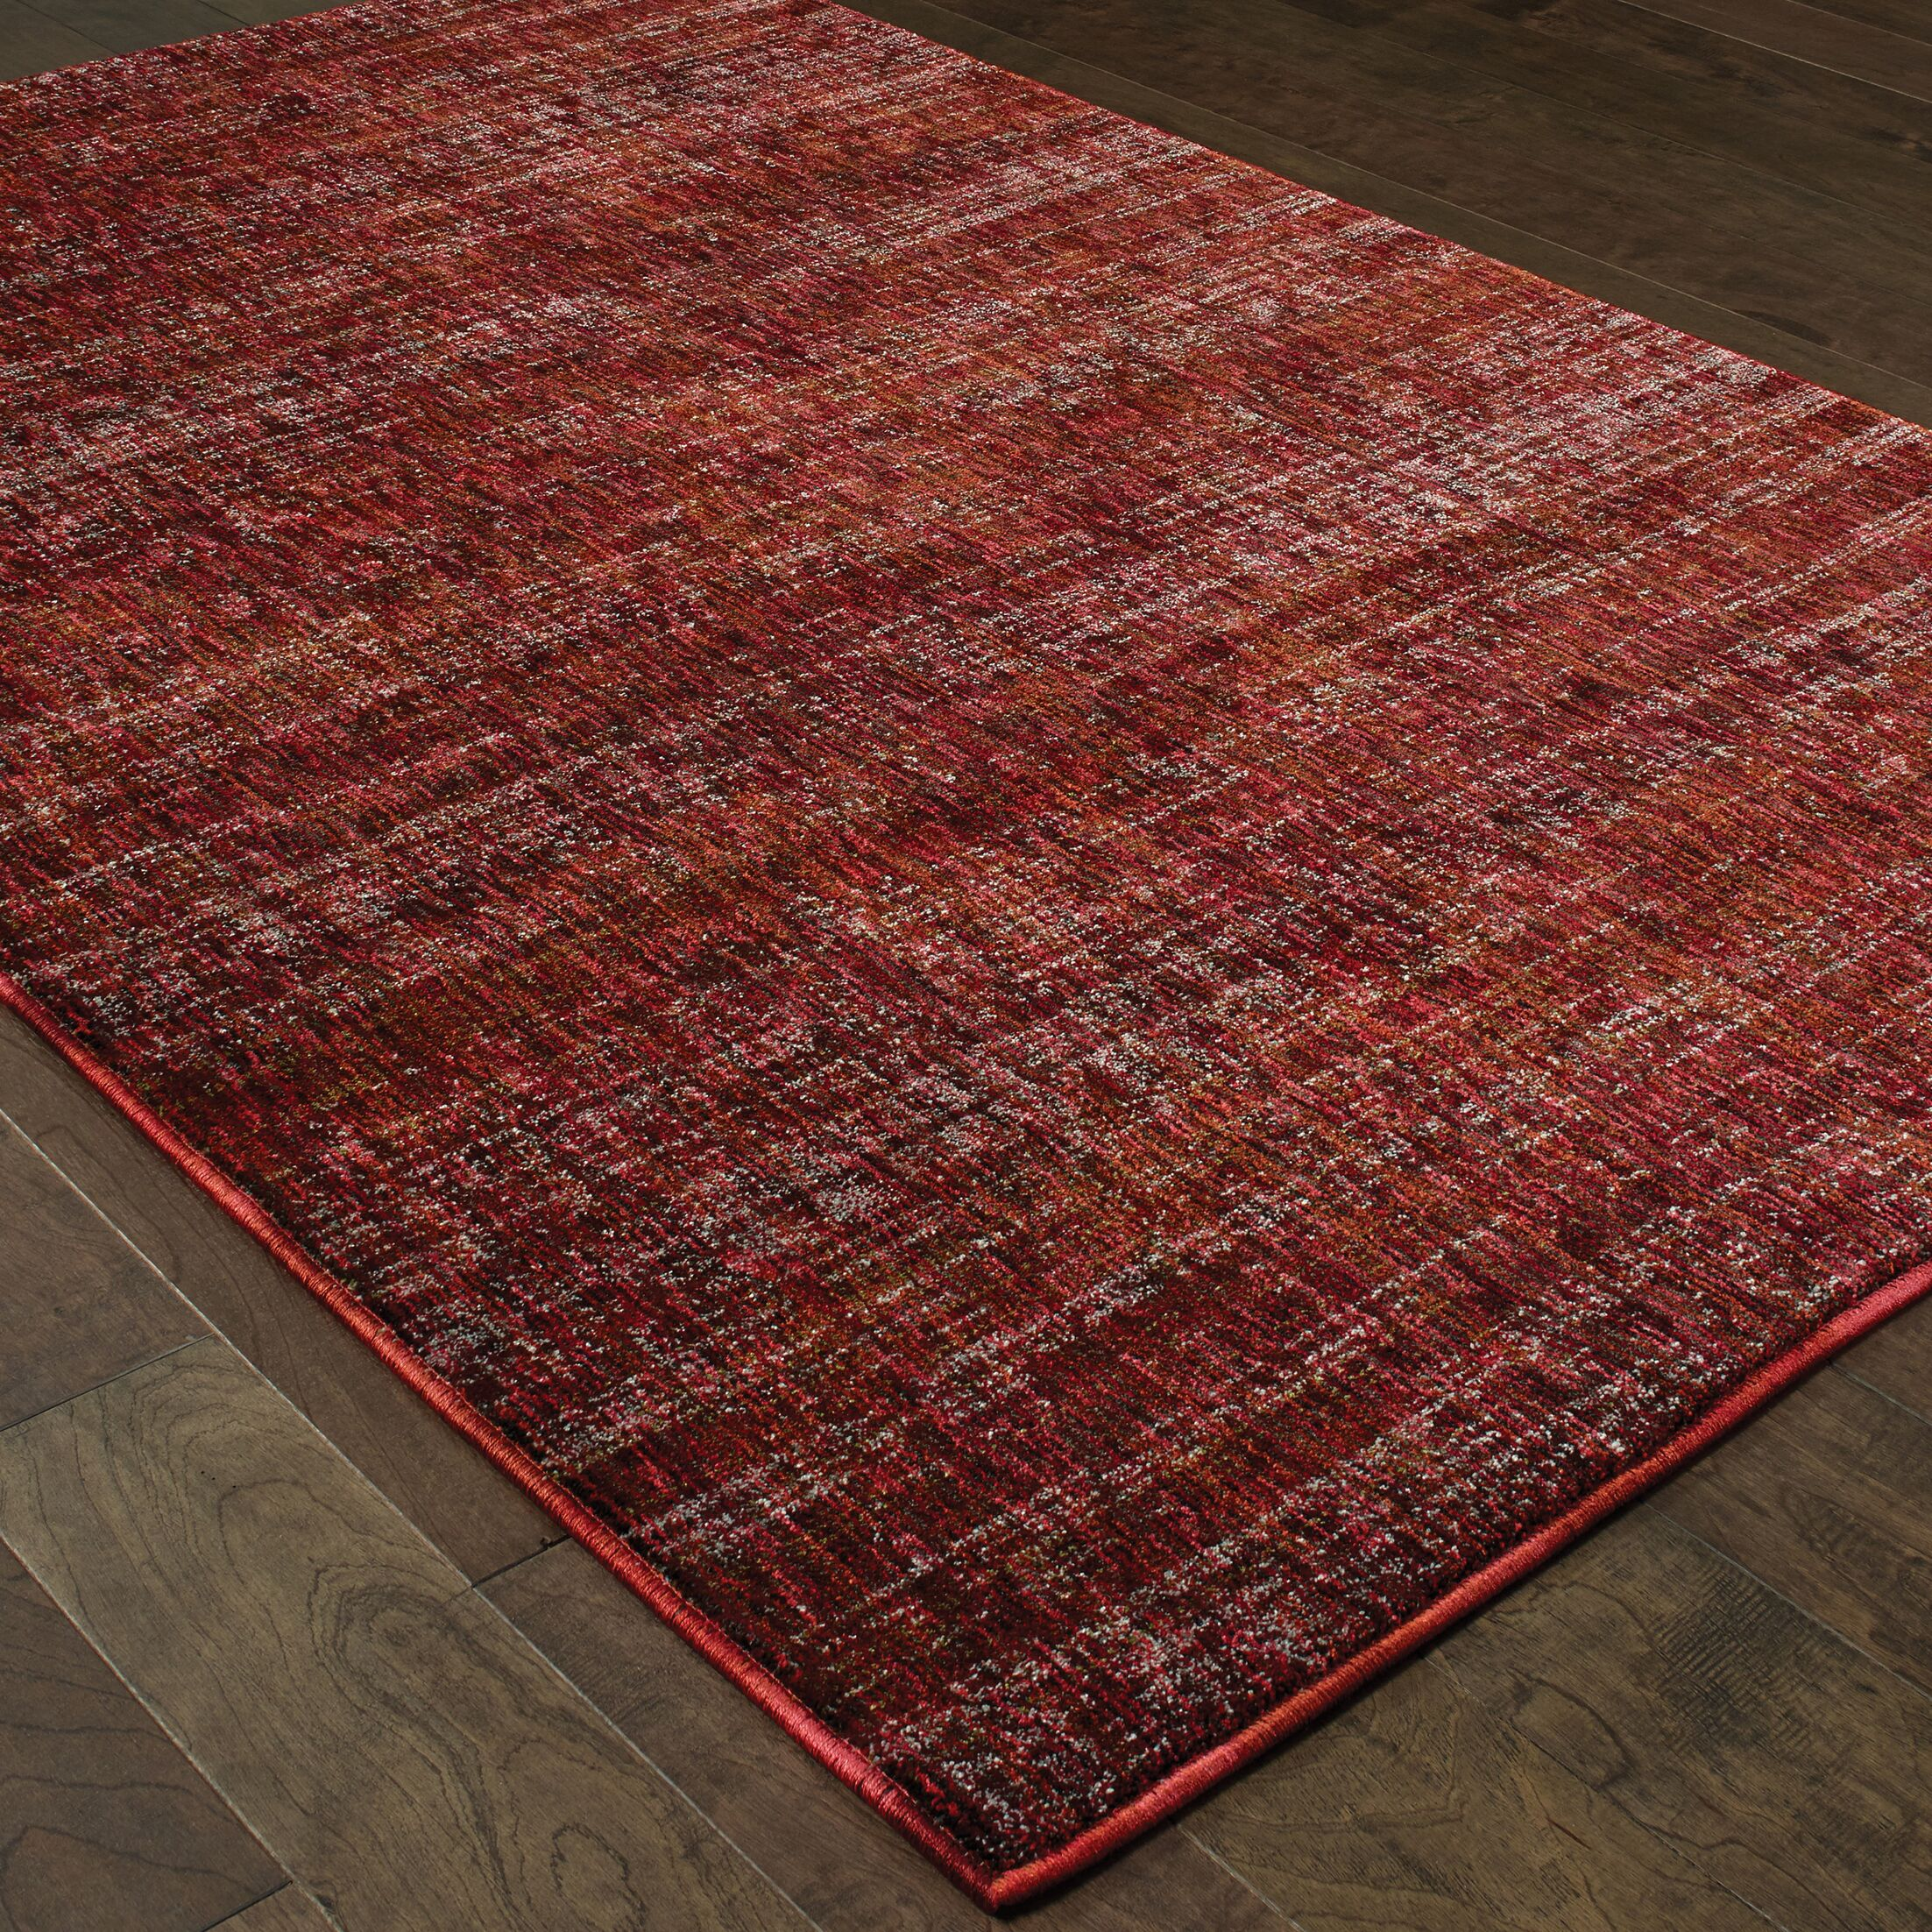 Bobby Red Area Rug Rug Size: Rectangle 7'10